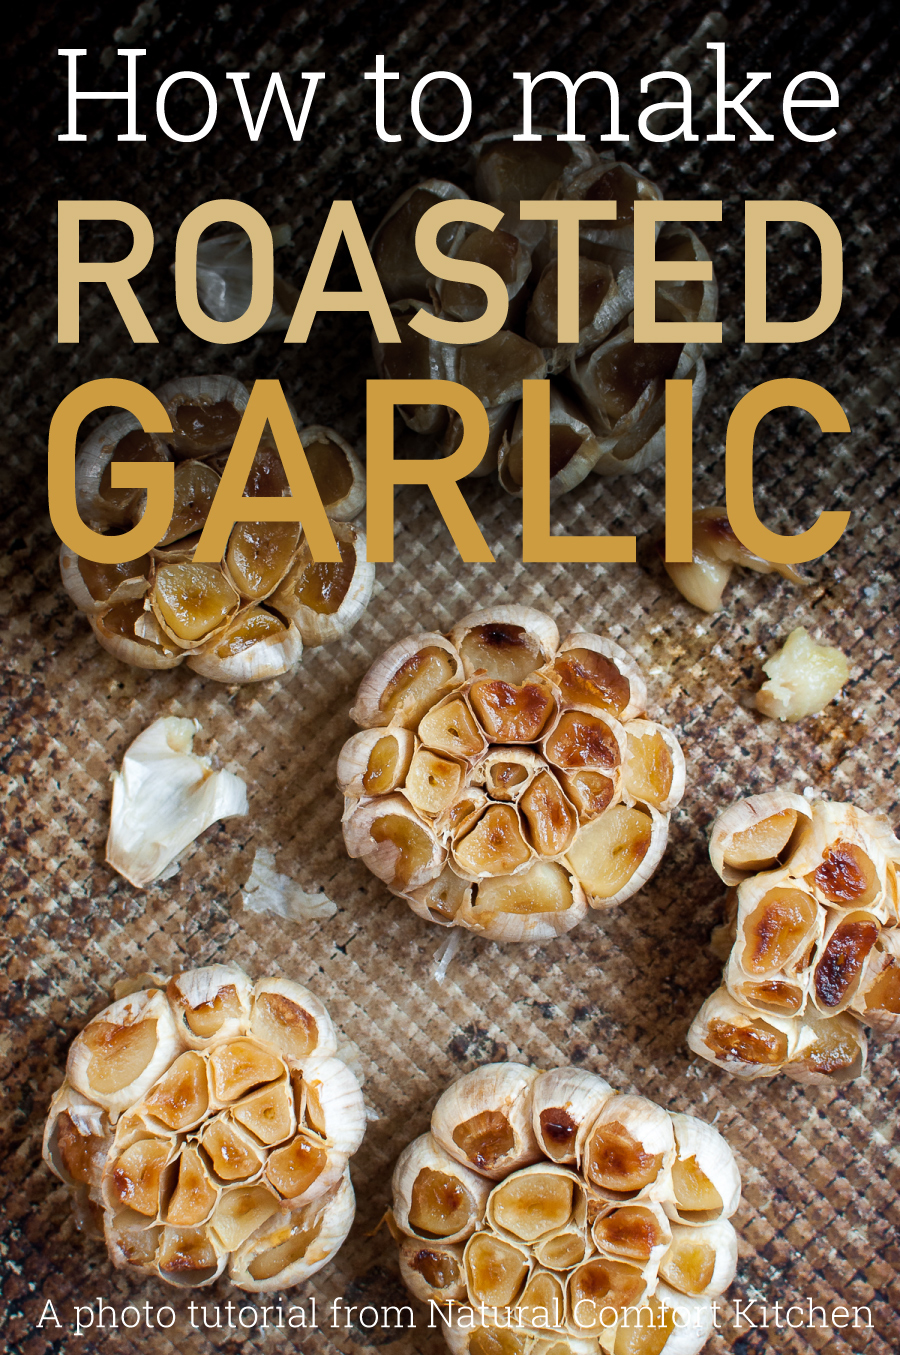 Roasted garlic is a flavor powerhouse that you can add to SO many different dishes!